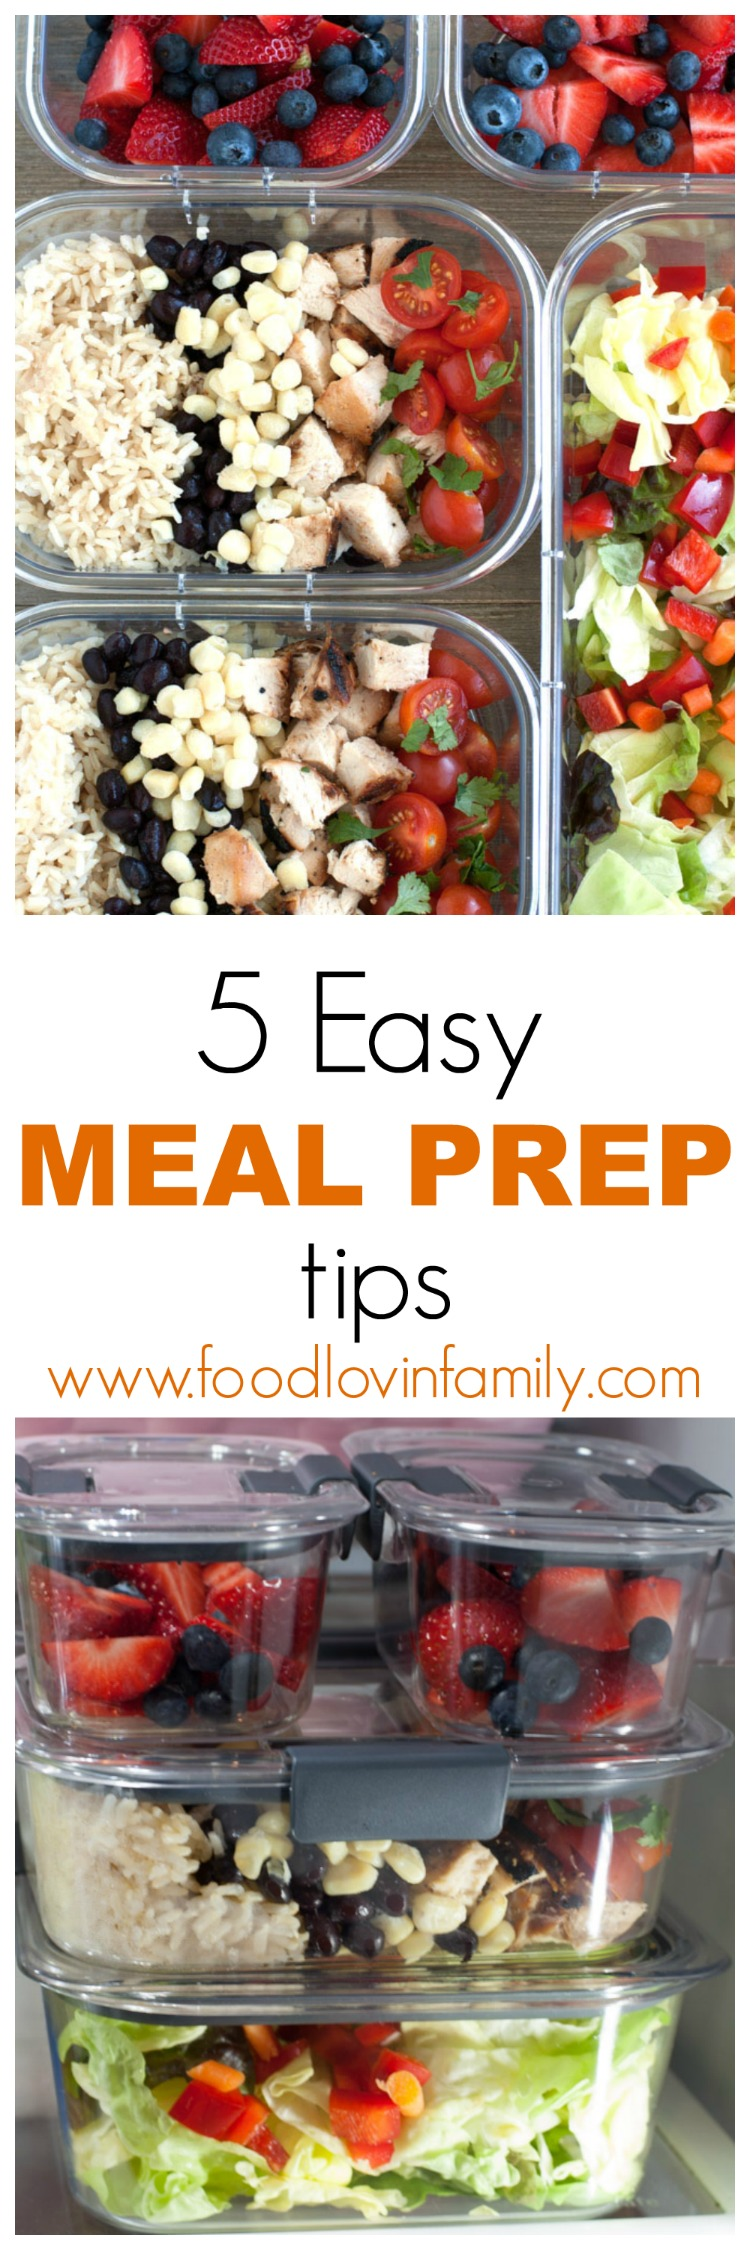 Meal-Prep Plan Tips So You Actually Stick With It